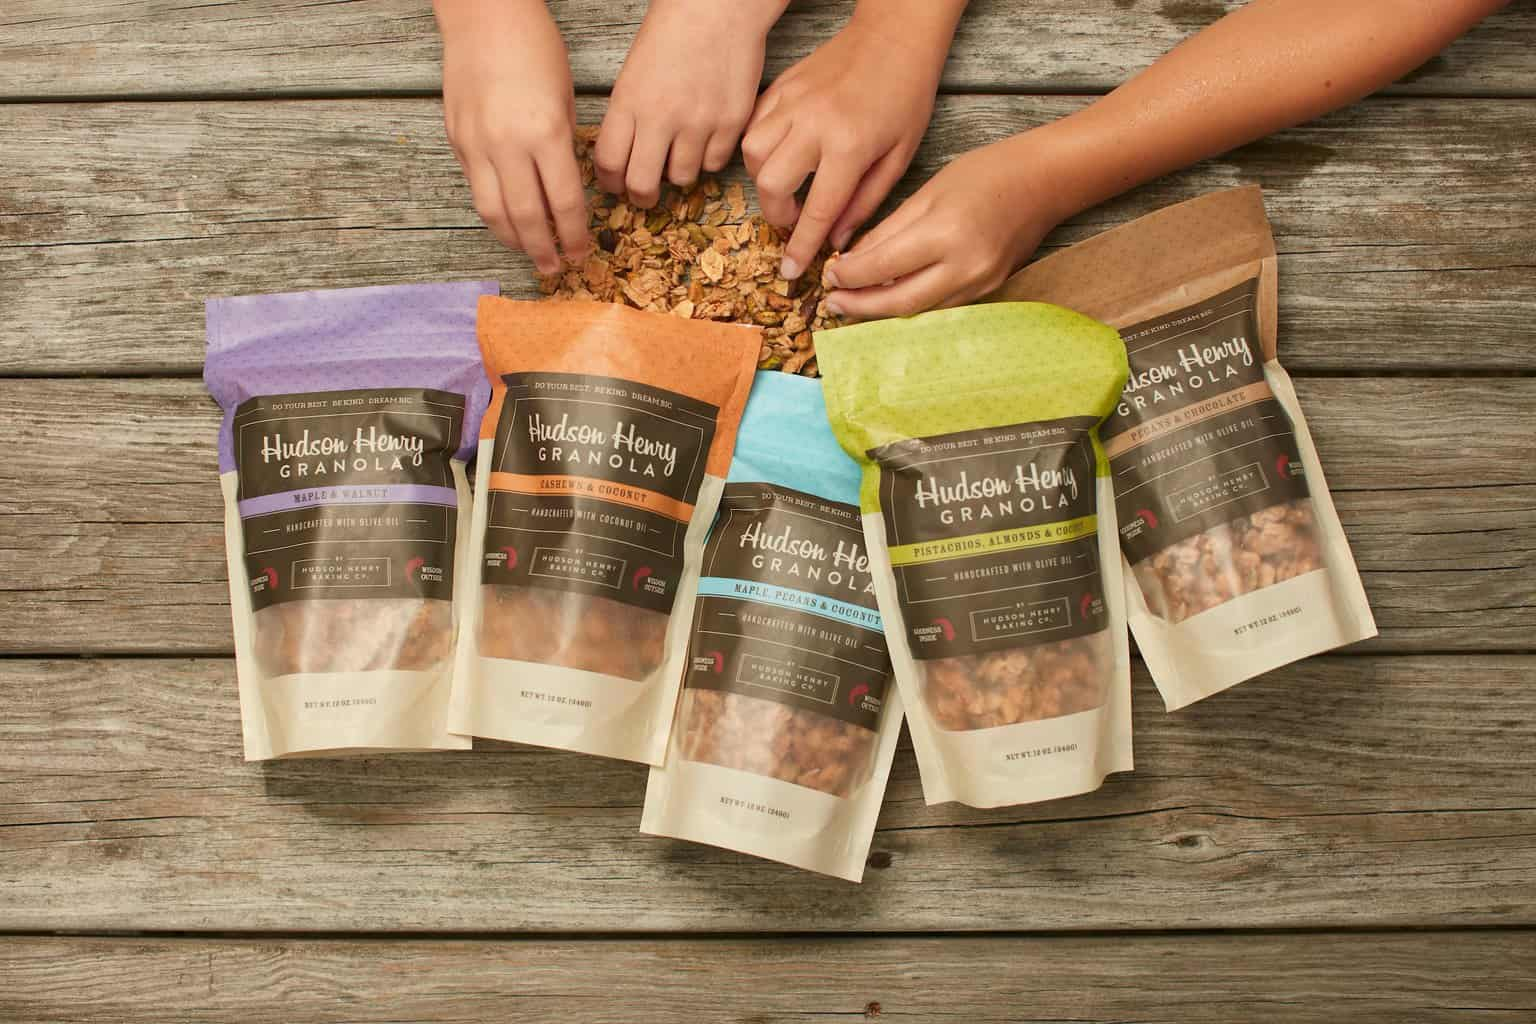 Small Batch, All-Natural Artisan Granola from Hudson Henry Baking Company - Handmade with Olive Oil - Made in Virginia